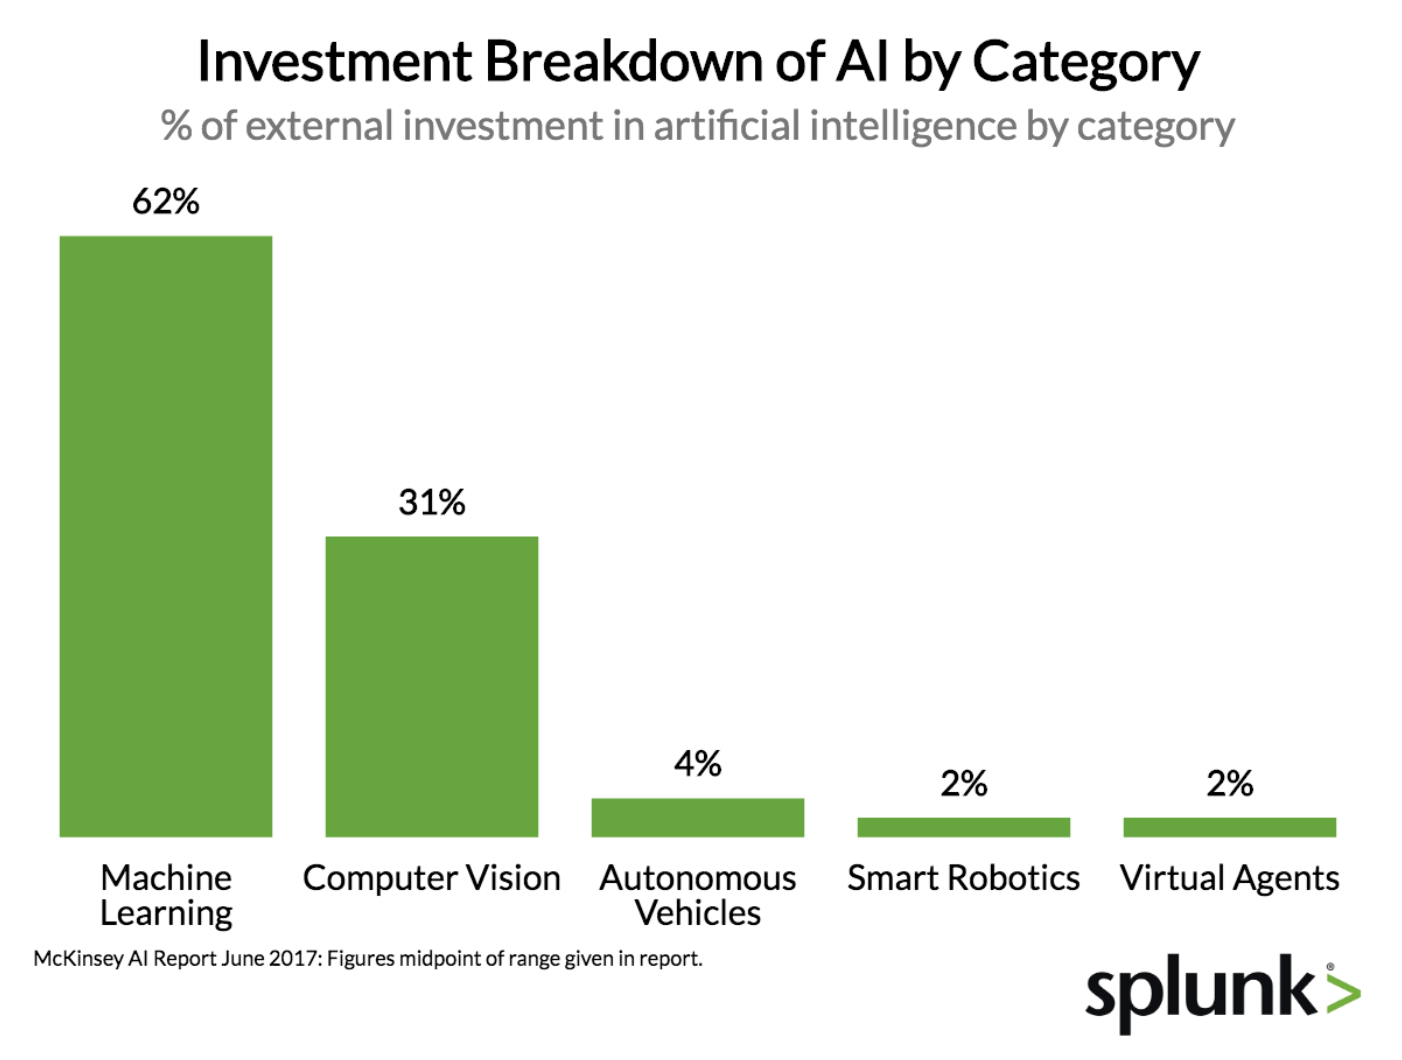 Investment breakdown of AI by category